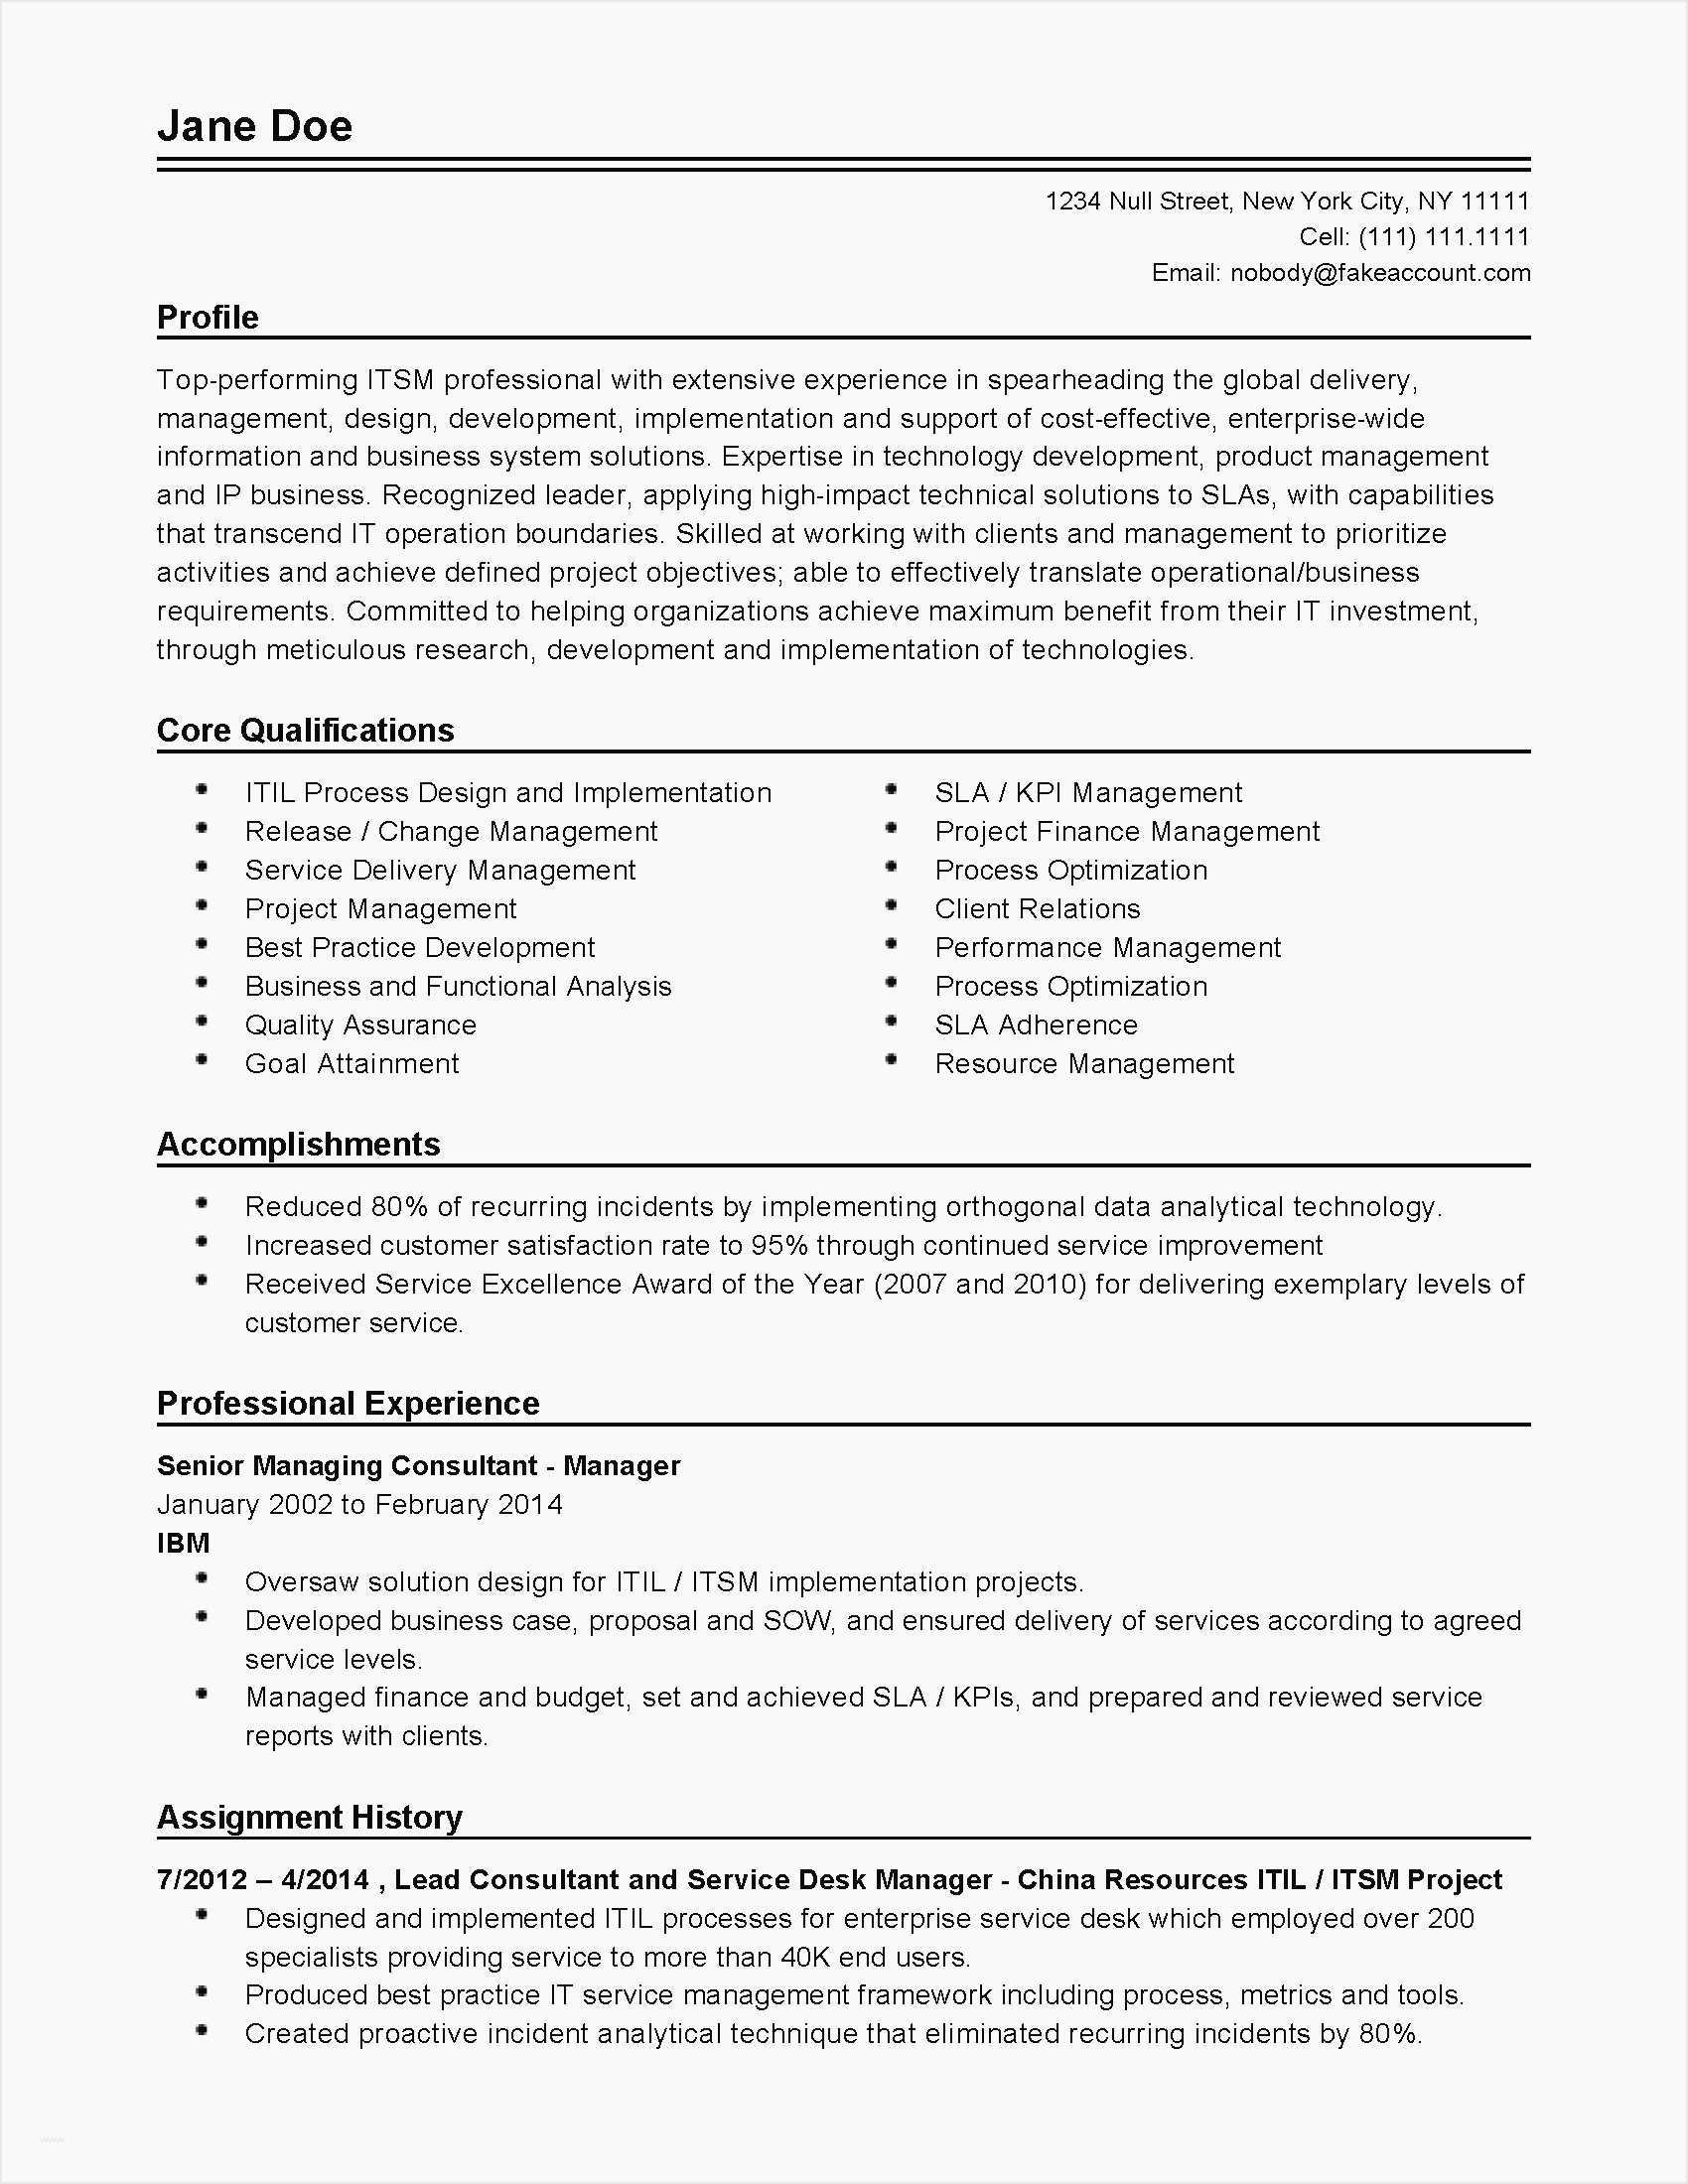 sample letter of recommendation template free Collection-Free Resume Cover Letter Template Awesome Lovely Sample Hr Resume 5-p